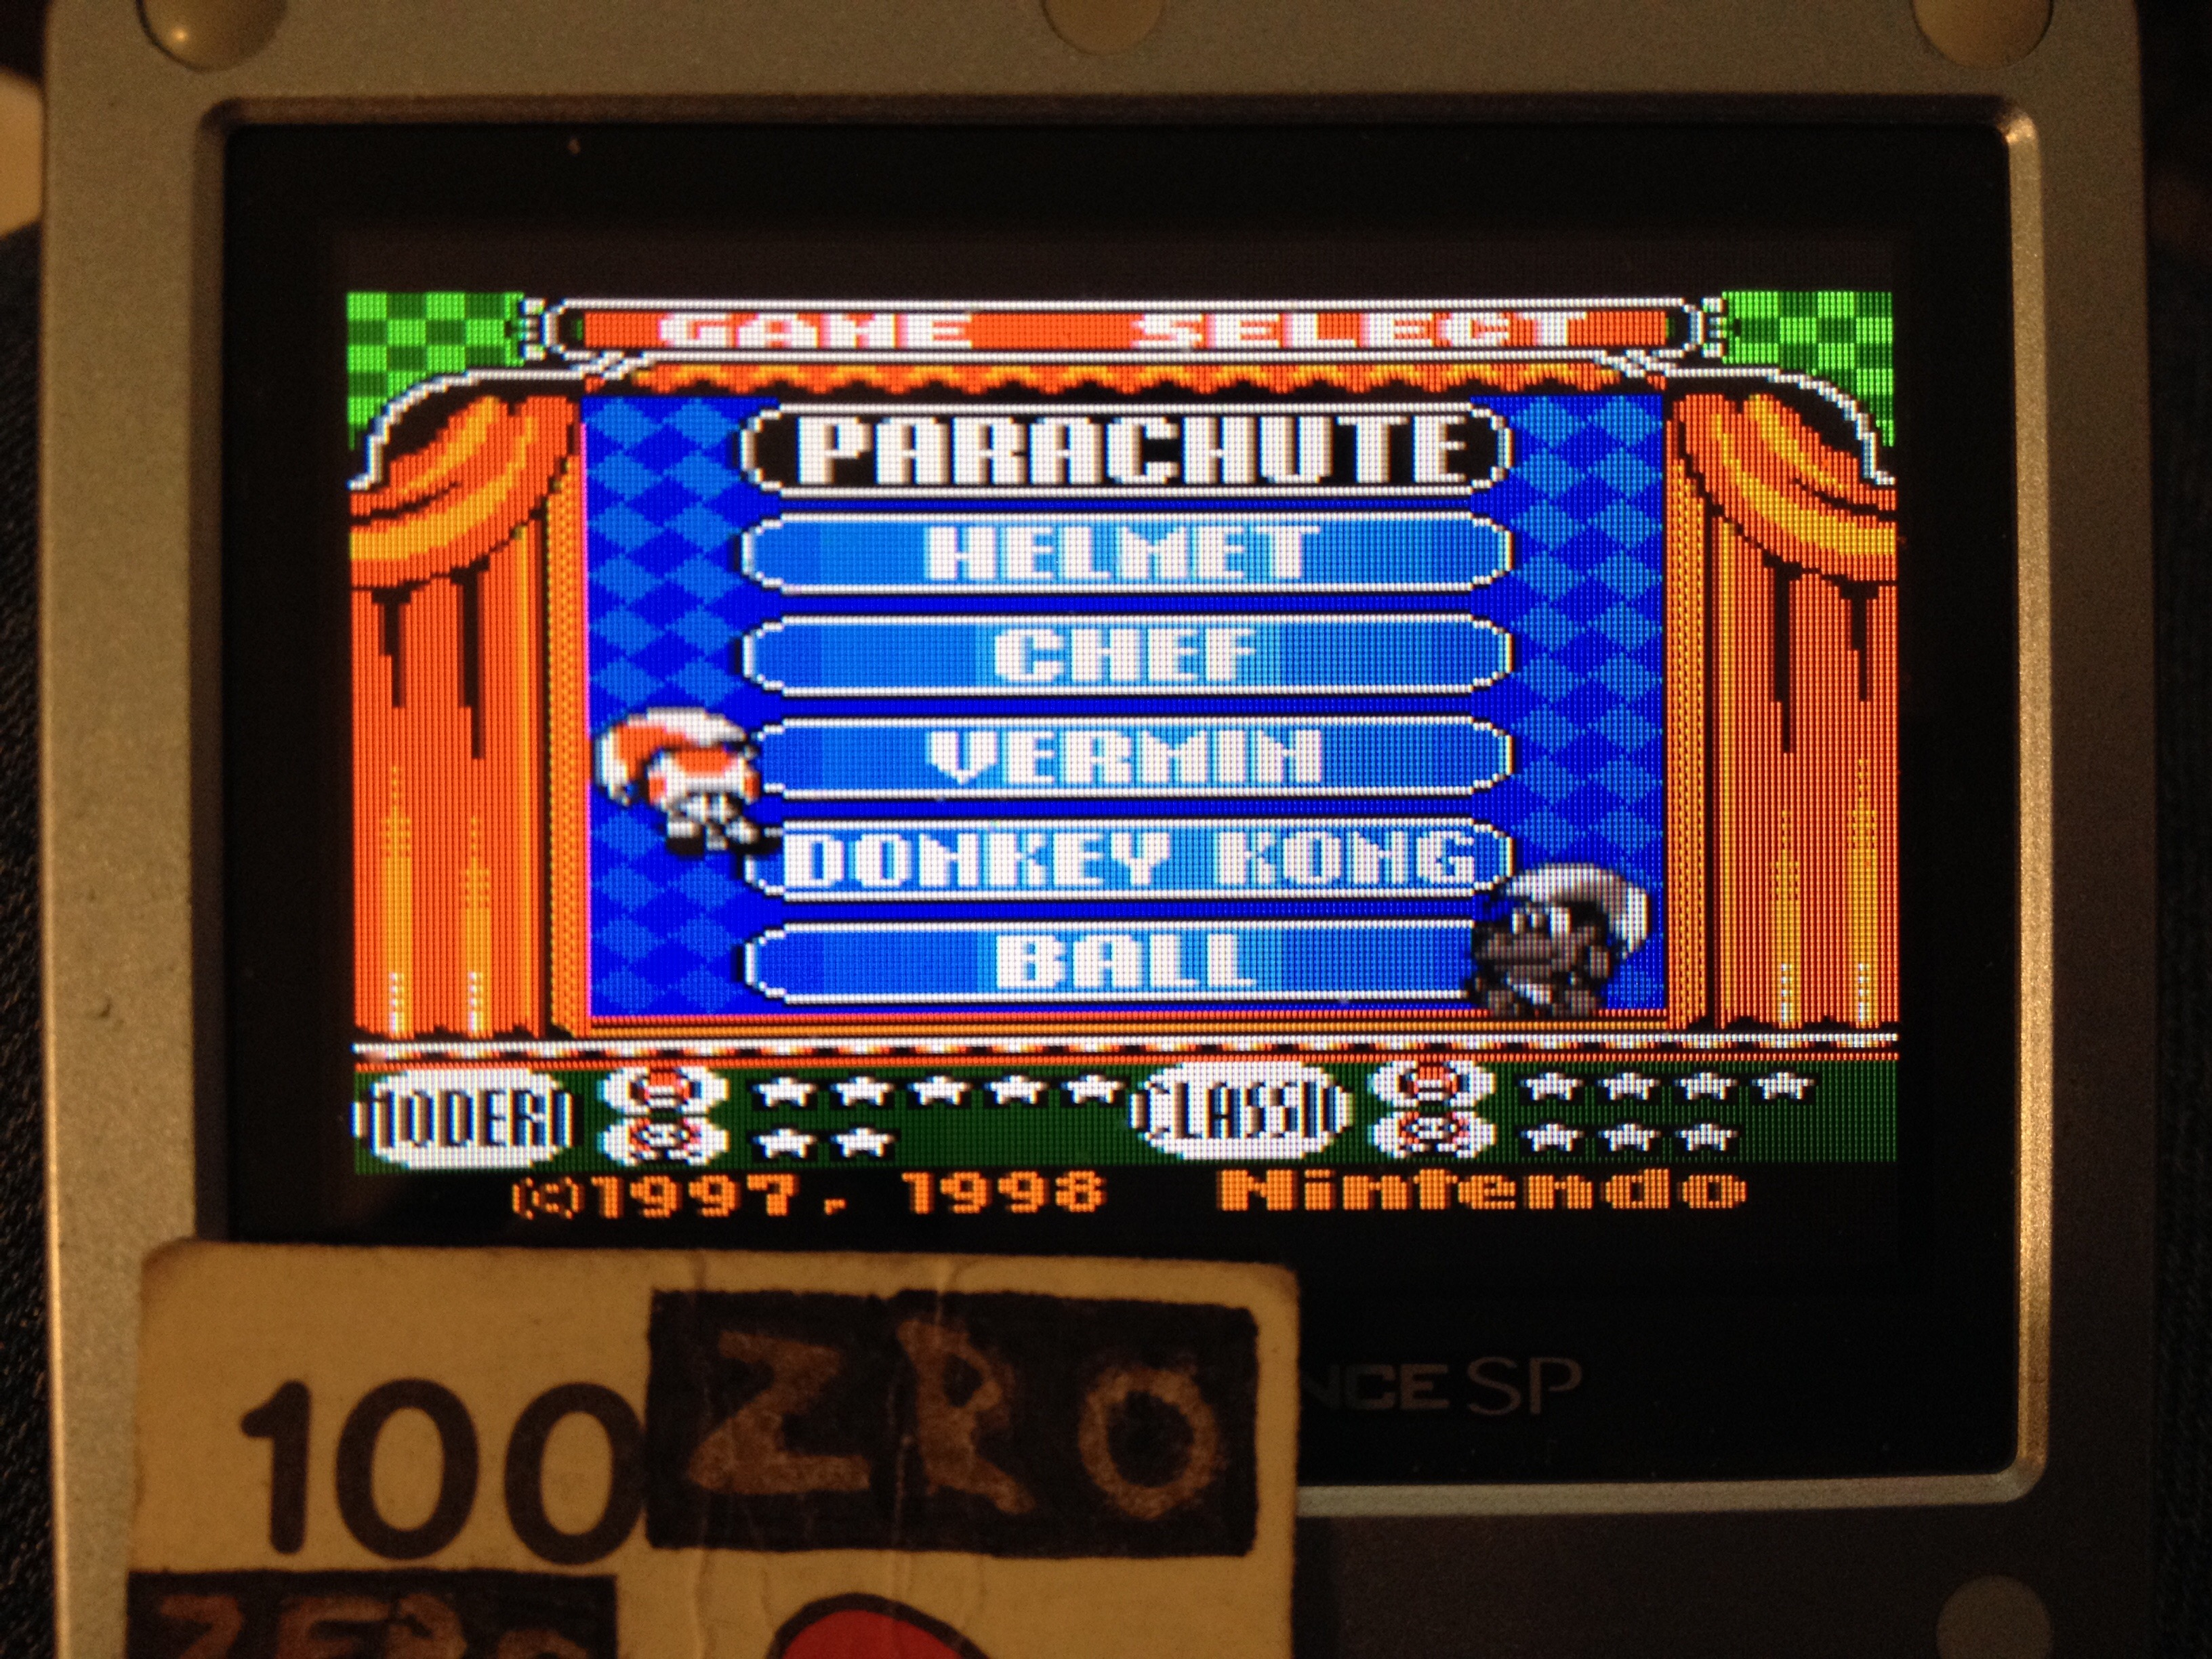 Game & Watch Gallery 2: Parachute: Modern: Easy 1,032 points